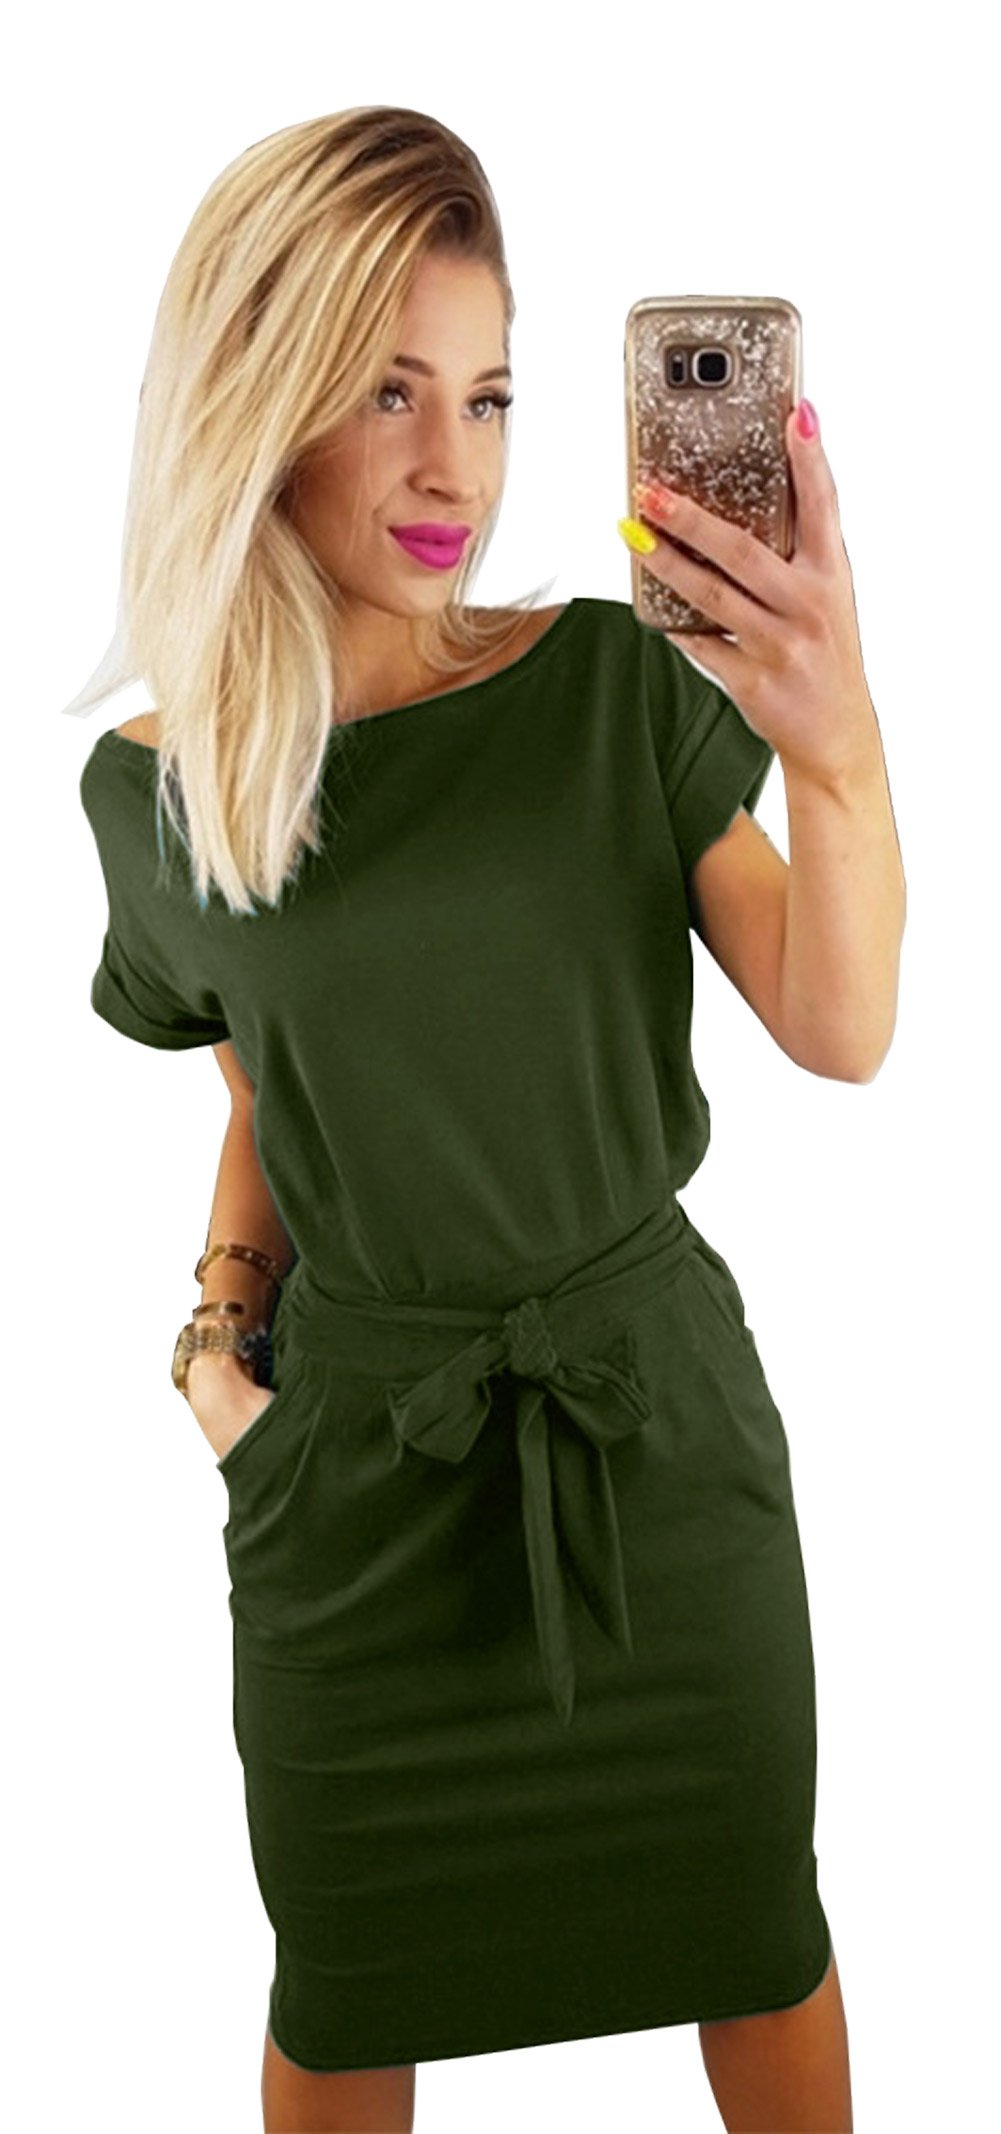 Longwu Women's Elegant Short Sleeve Wear to Work Casual Pencil Dress Belt ArmyGreen-S